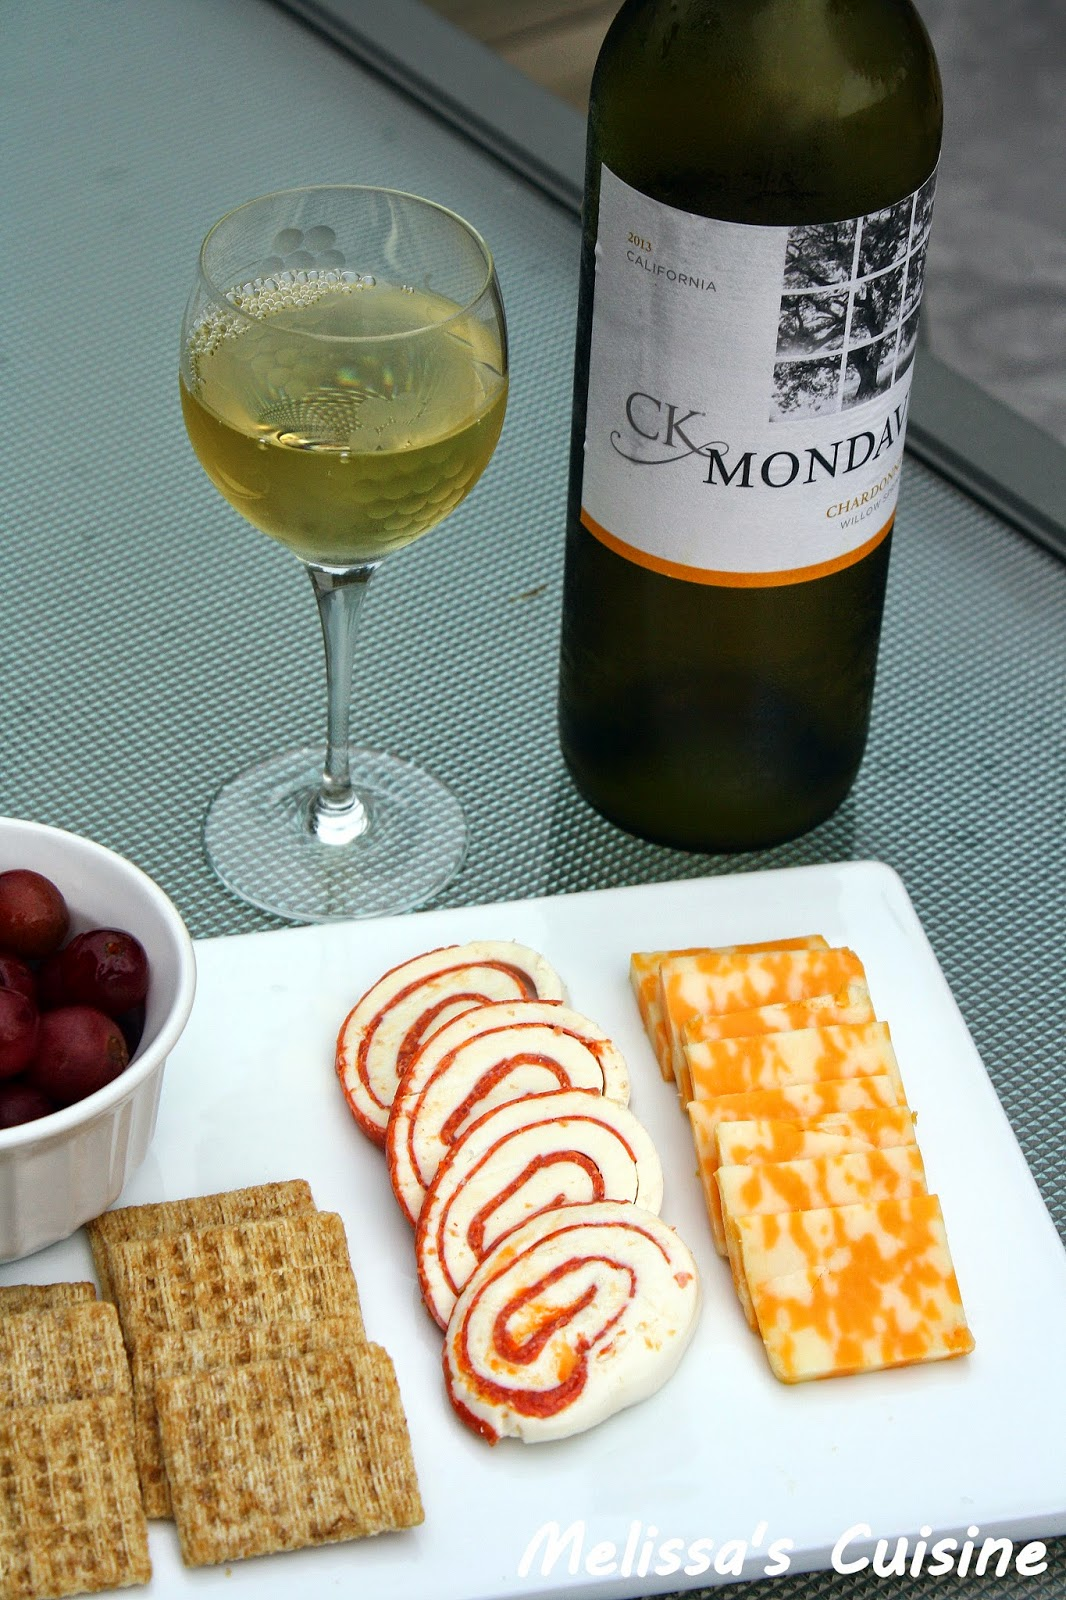 Melissa's Cuisine: Celebrate the 4th of July with CK Mondavi!  Sampler Platter Ideas